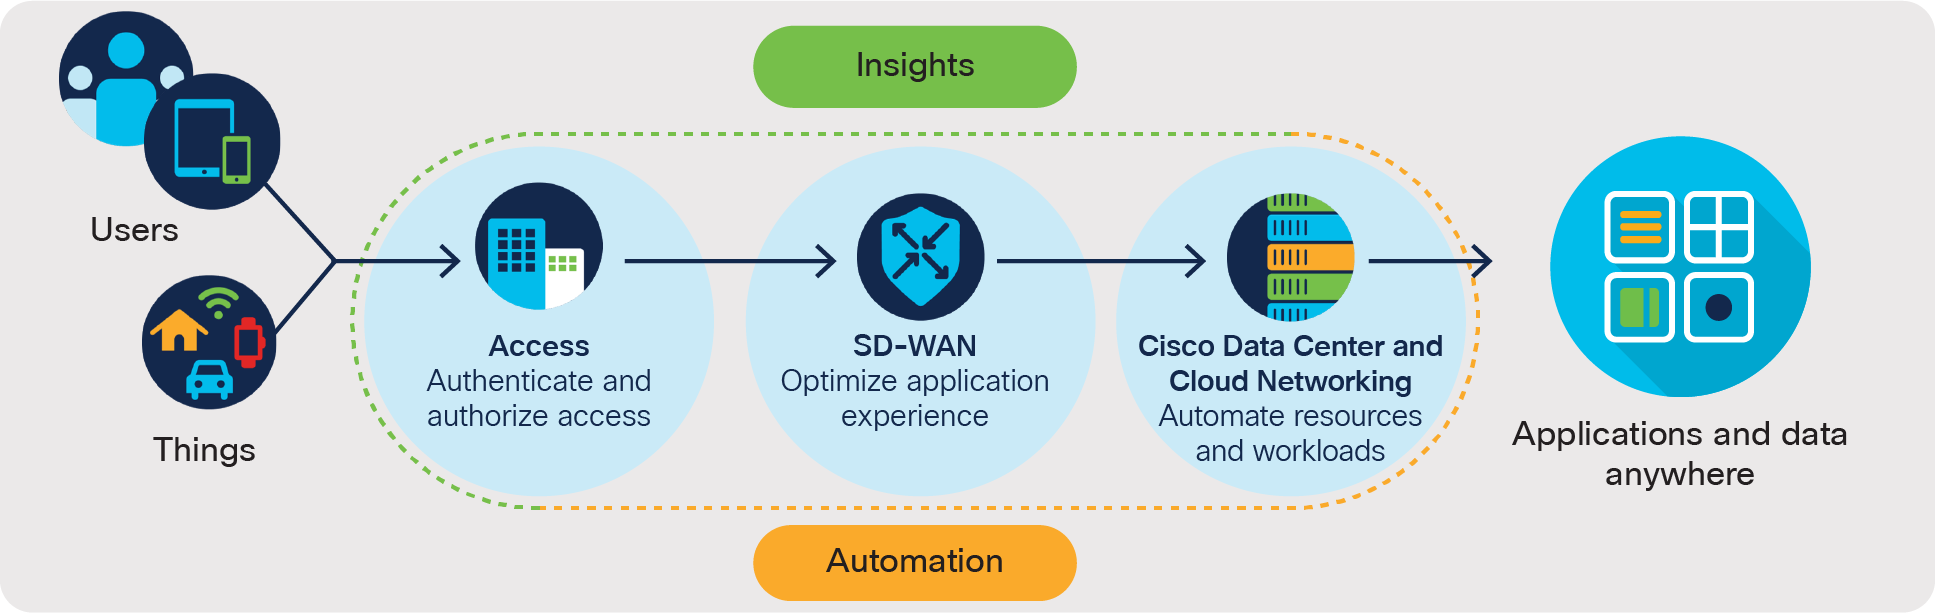 Solutions - Cisco Networking Solution Overview - Cisco